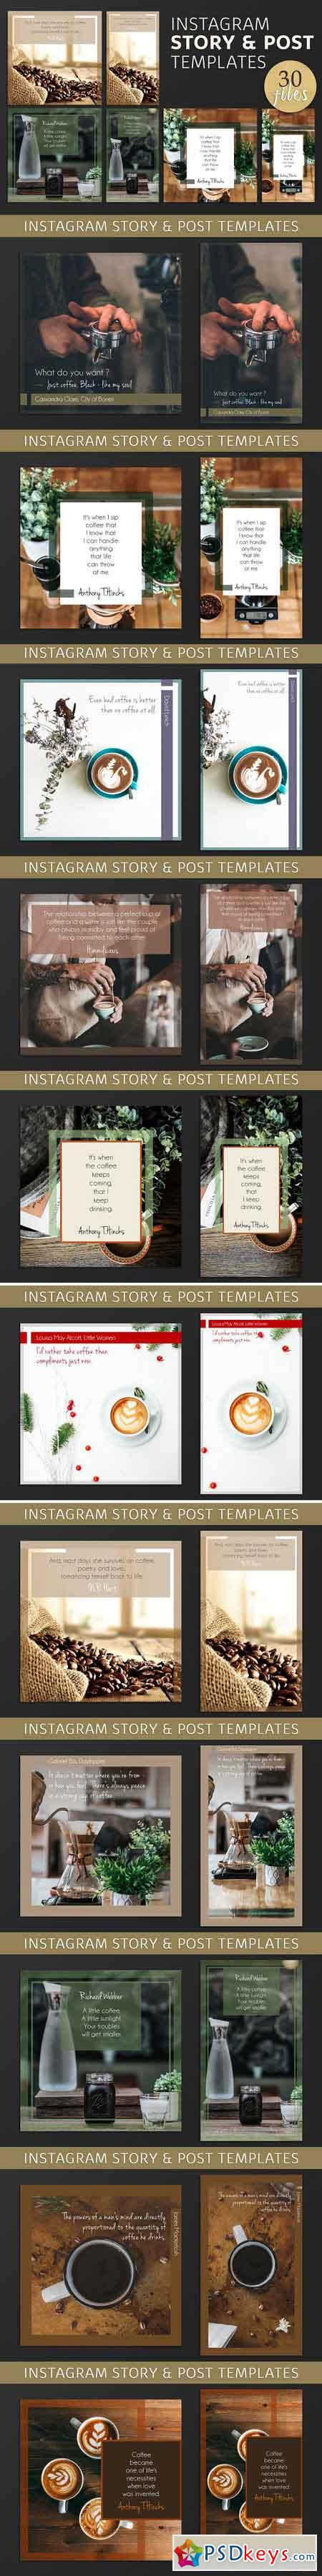 Instagram Post & Story Templates 2878743